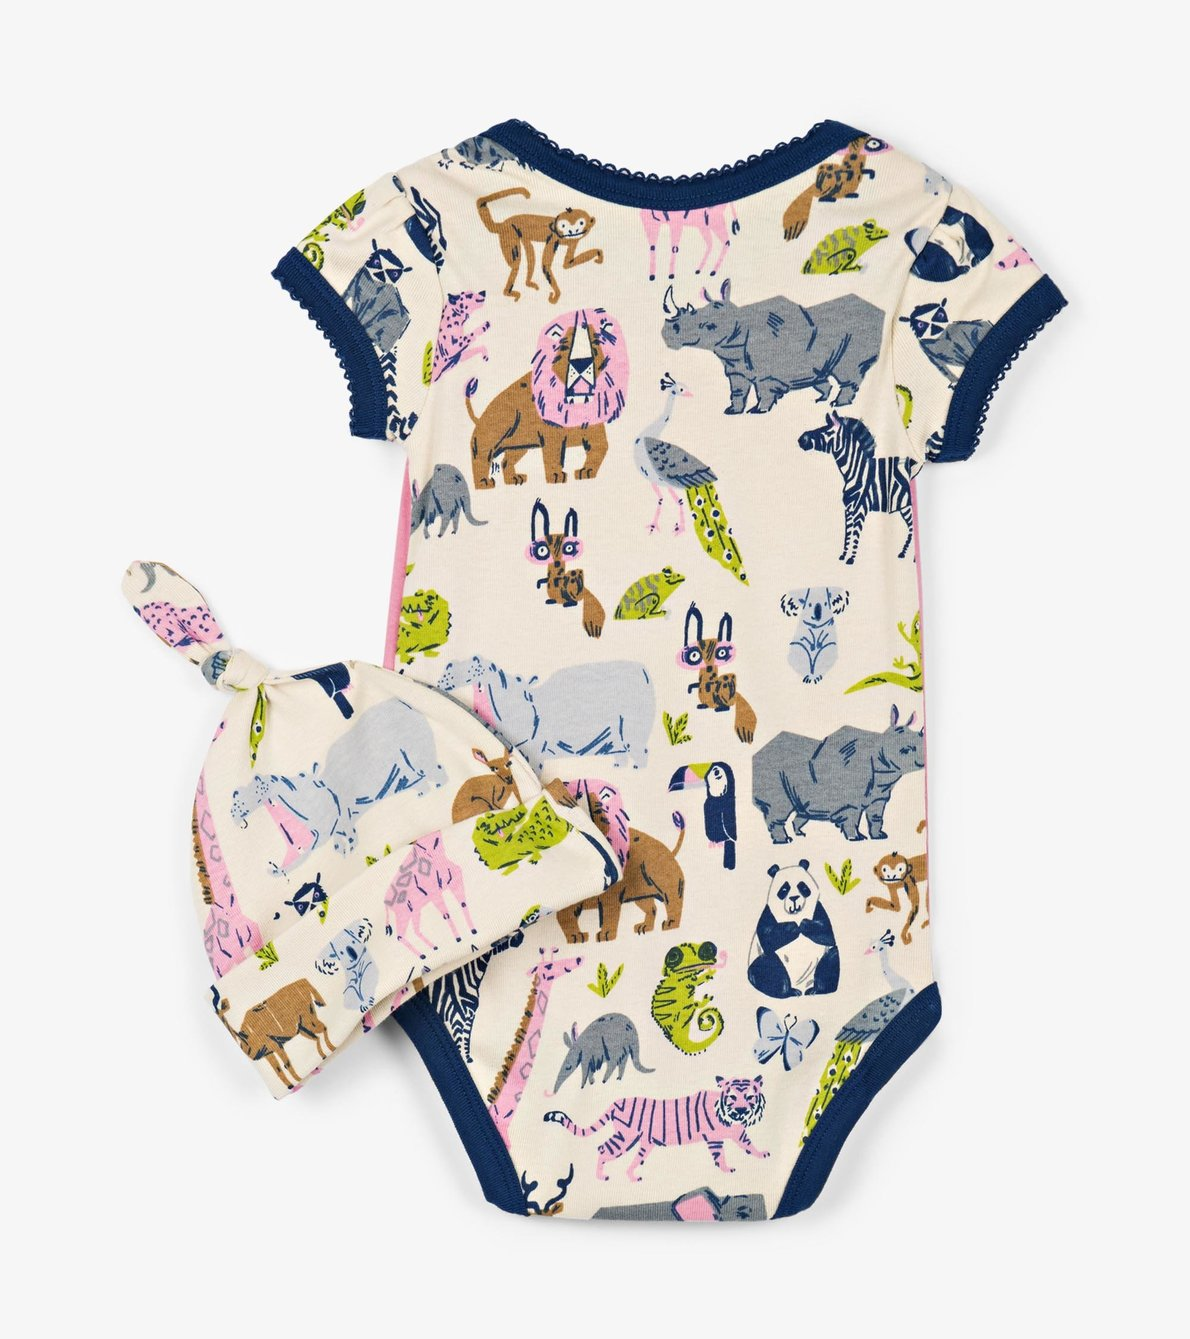 View larger image of Pretty Animal Safari Baby Bodysuit with Hat